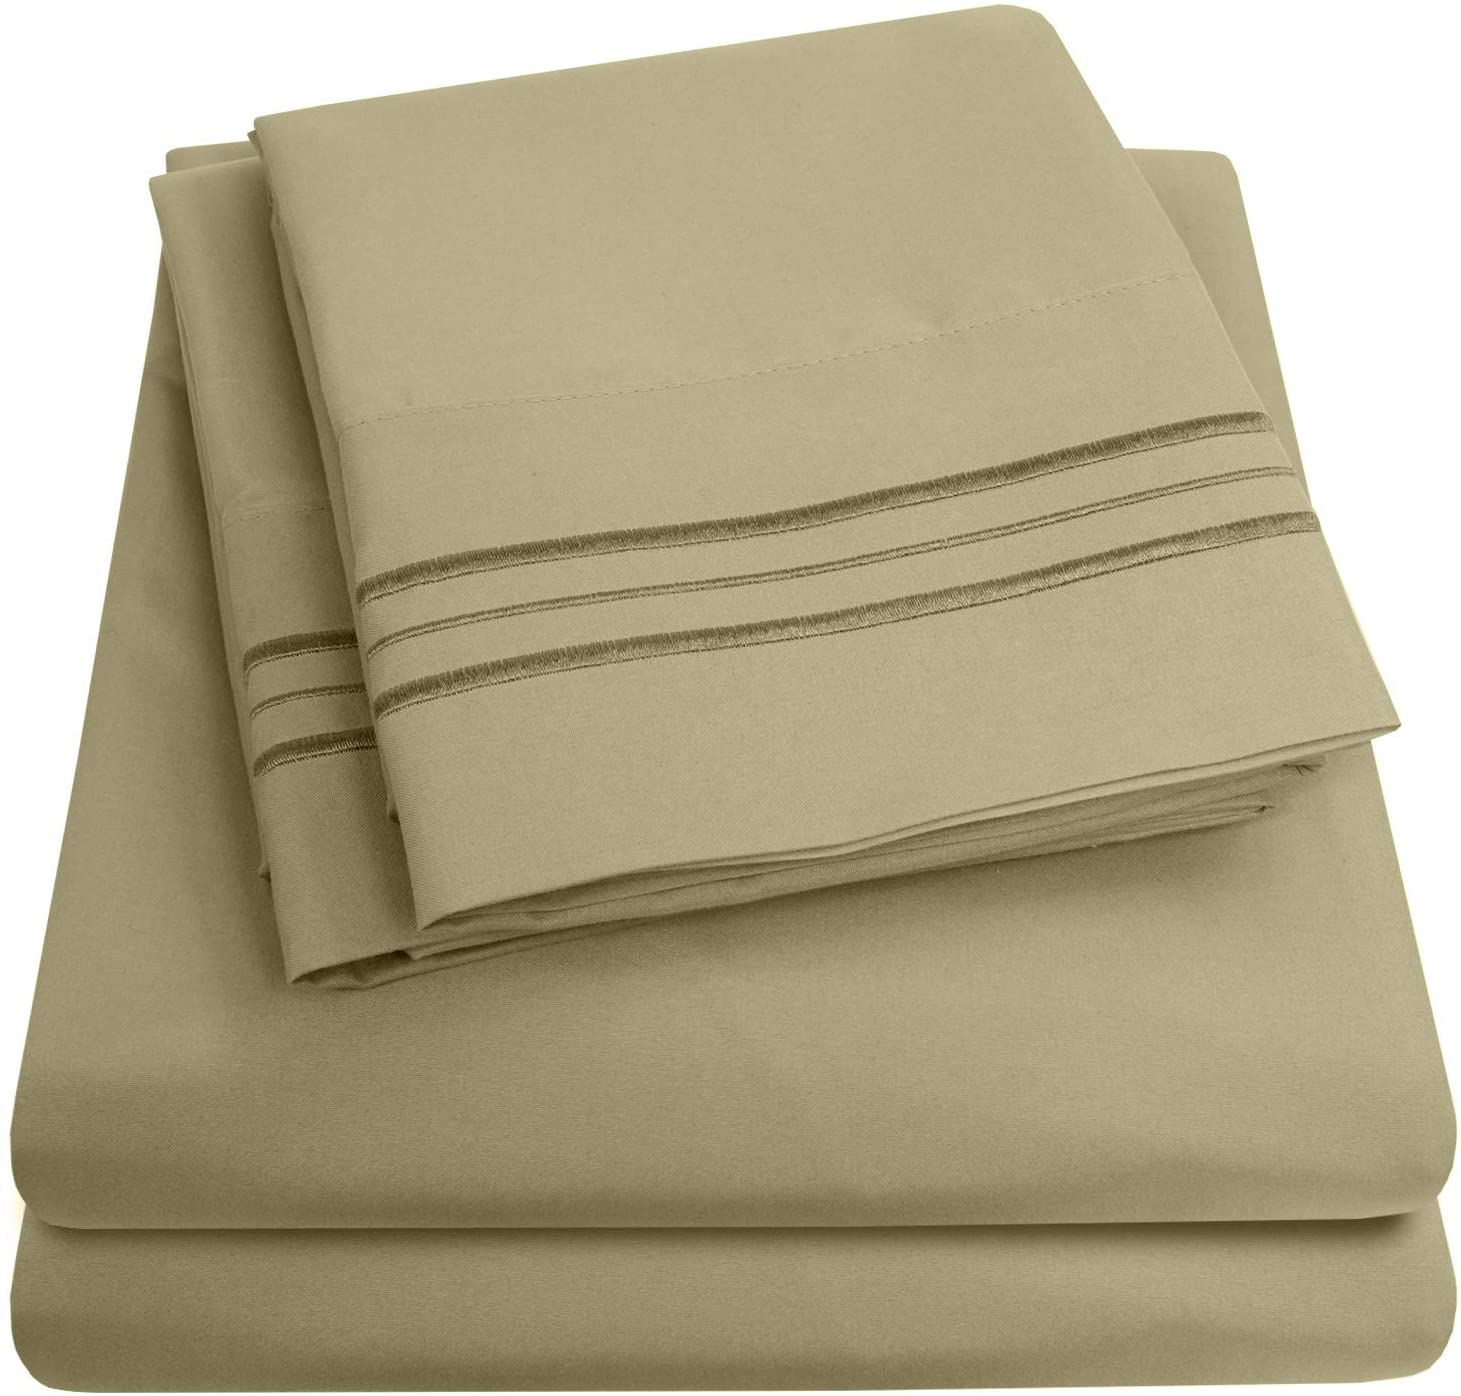 1500 Supreme Collection Extra Soft Split King Sheets Set, Sage - Luxury Bed Sheets Set with Deep Pocket Wrinkle Free Hypoallergenic Bedding, Over 40 Colors, Split King Size, Sage